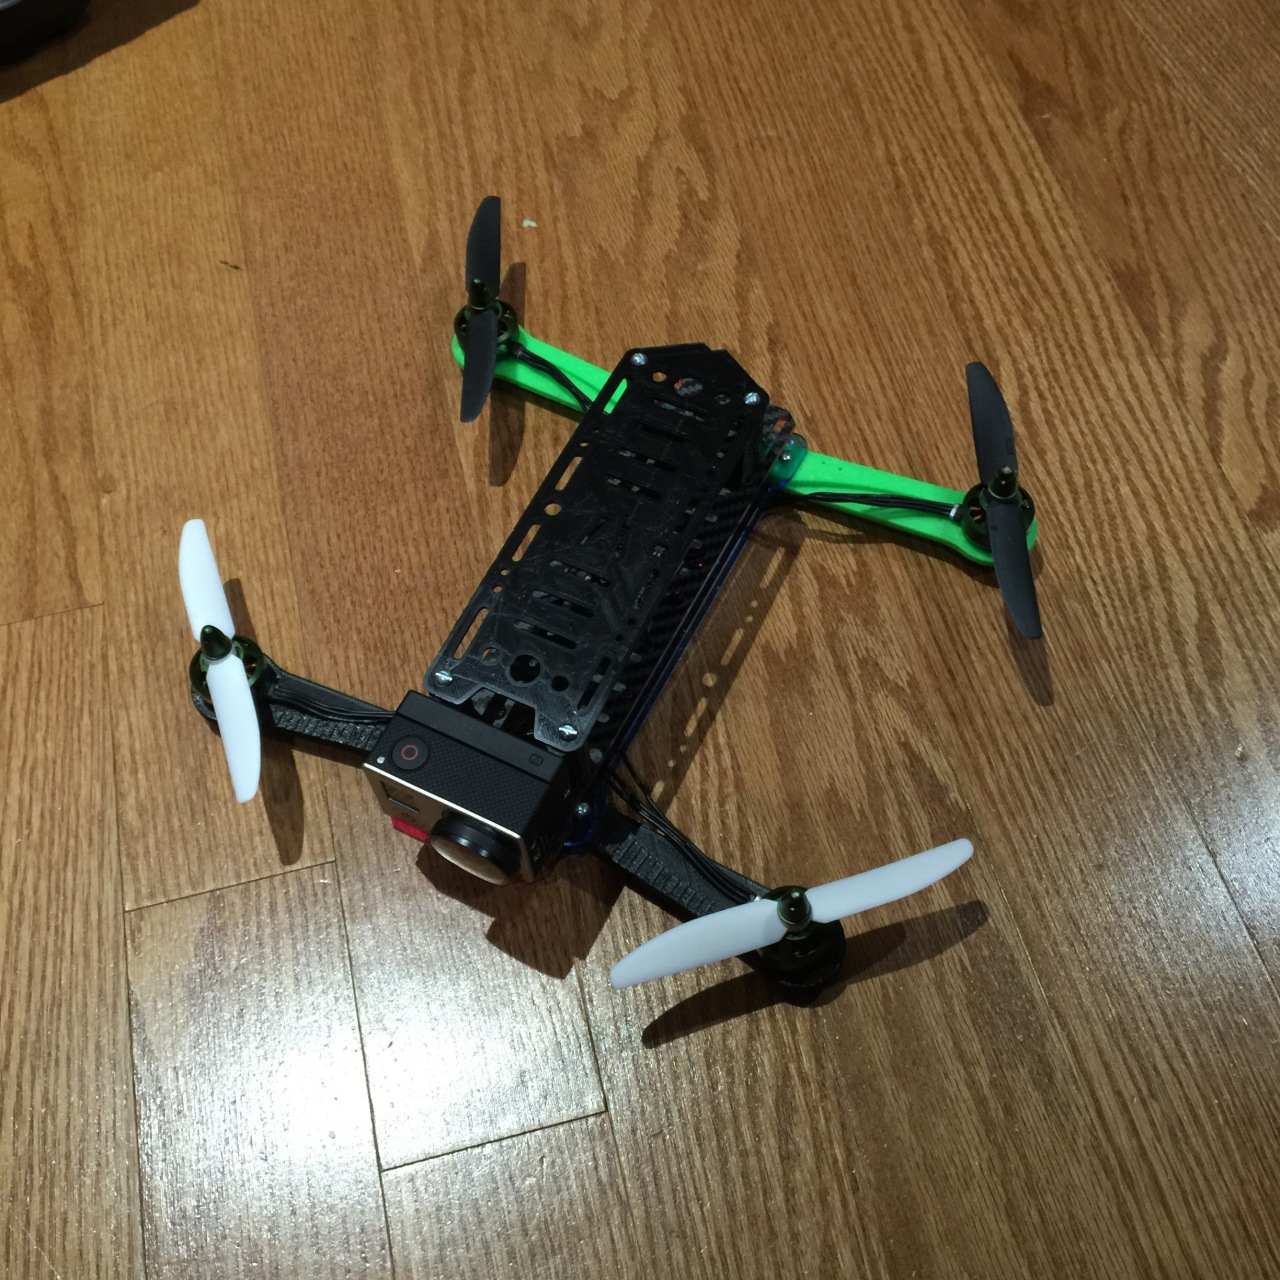 Project : Mini Racer type Quadcopter Part 1